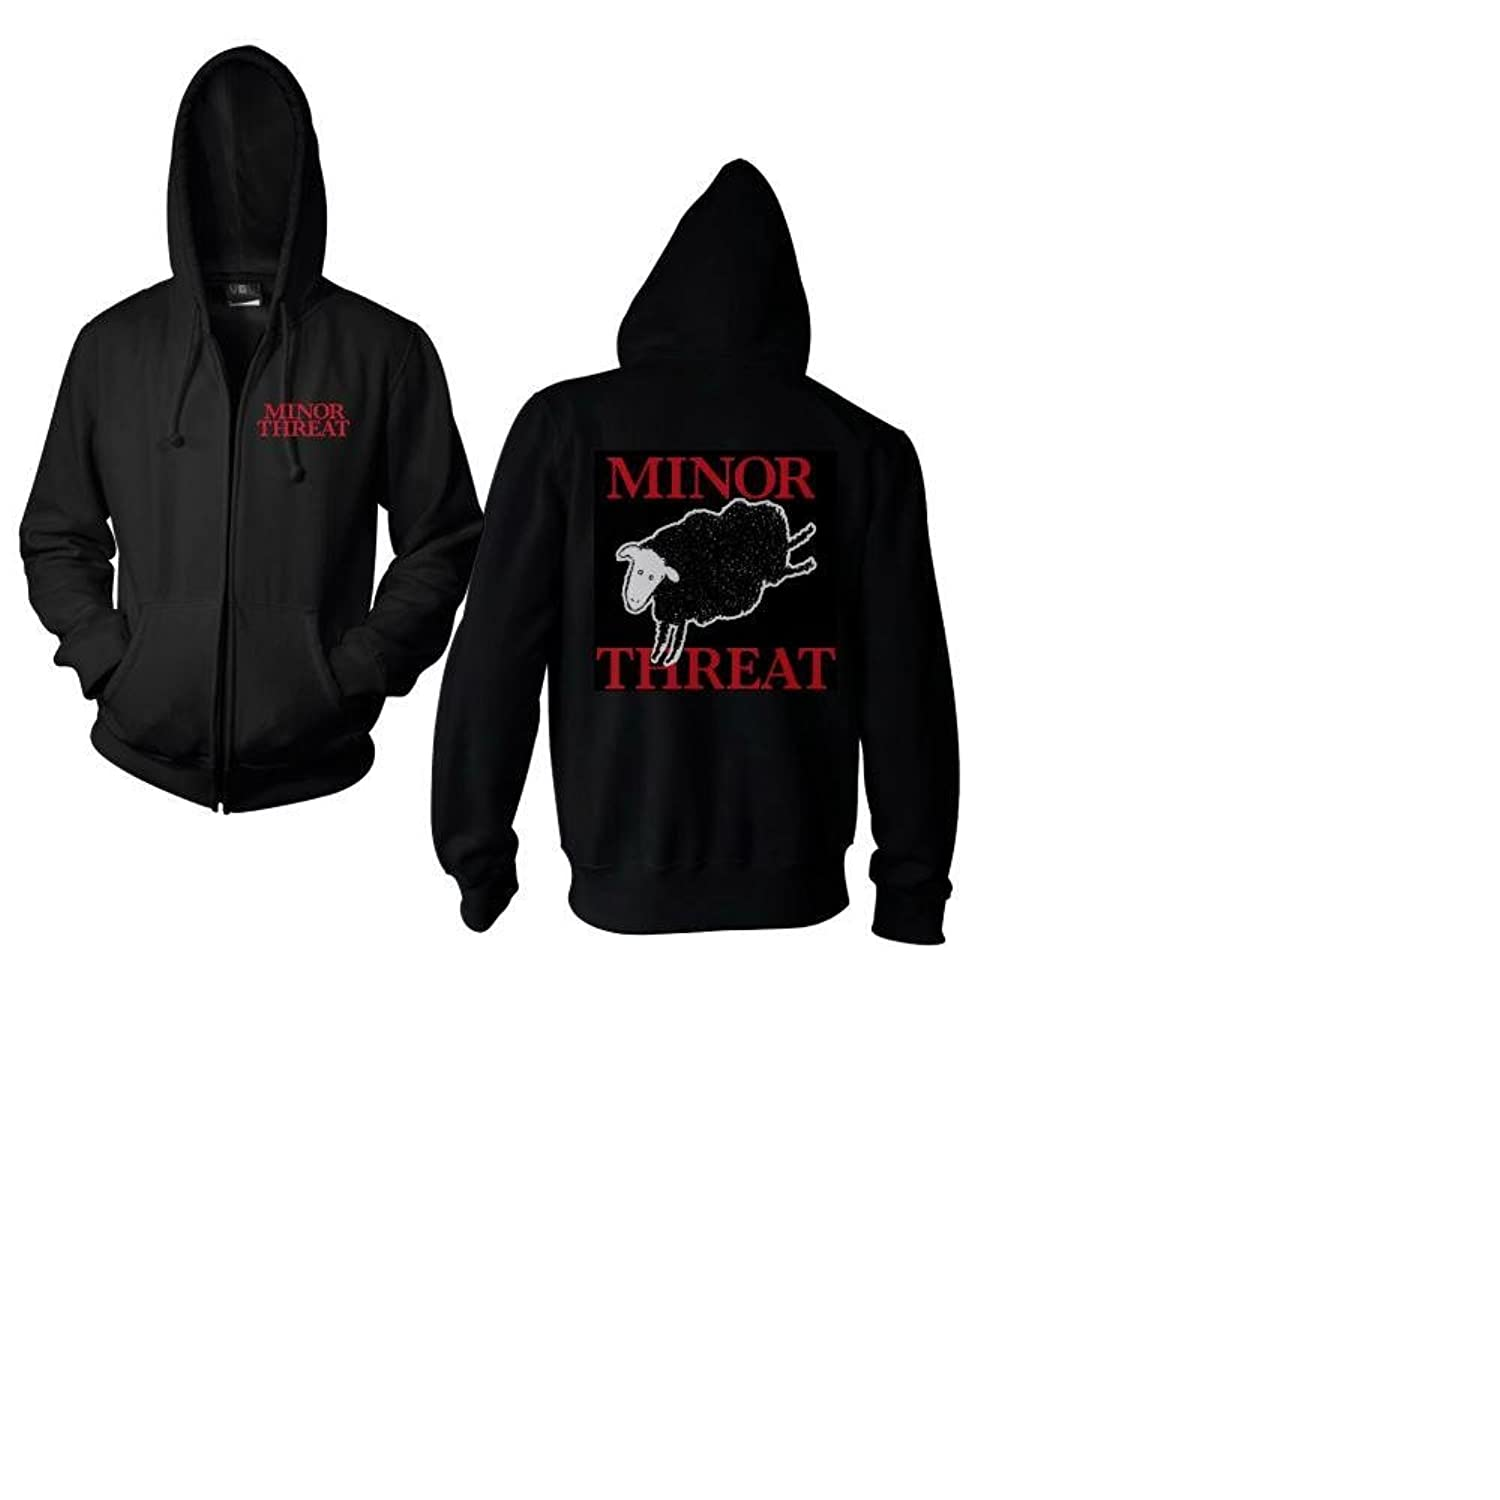 Minor Threat - Black Sheep Double Sided Hoodie Sweatshirt